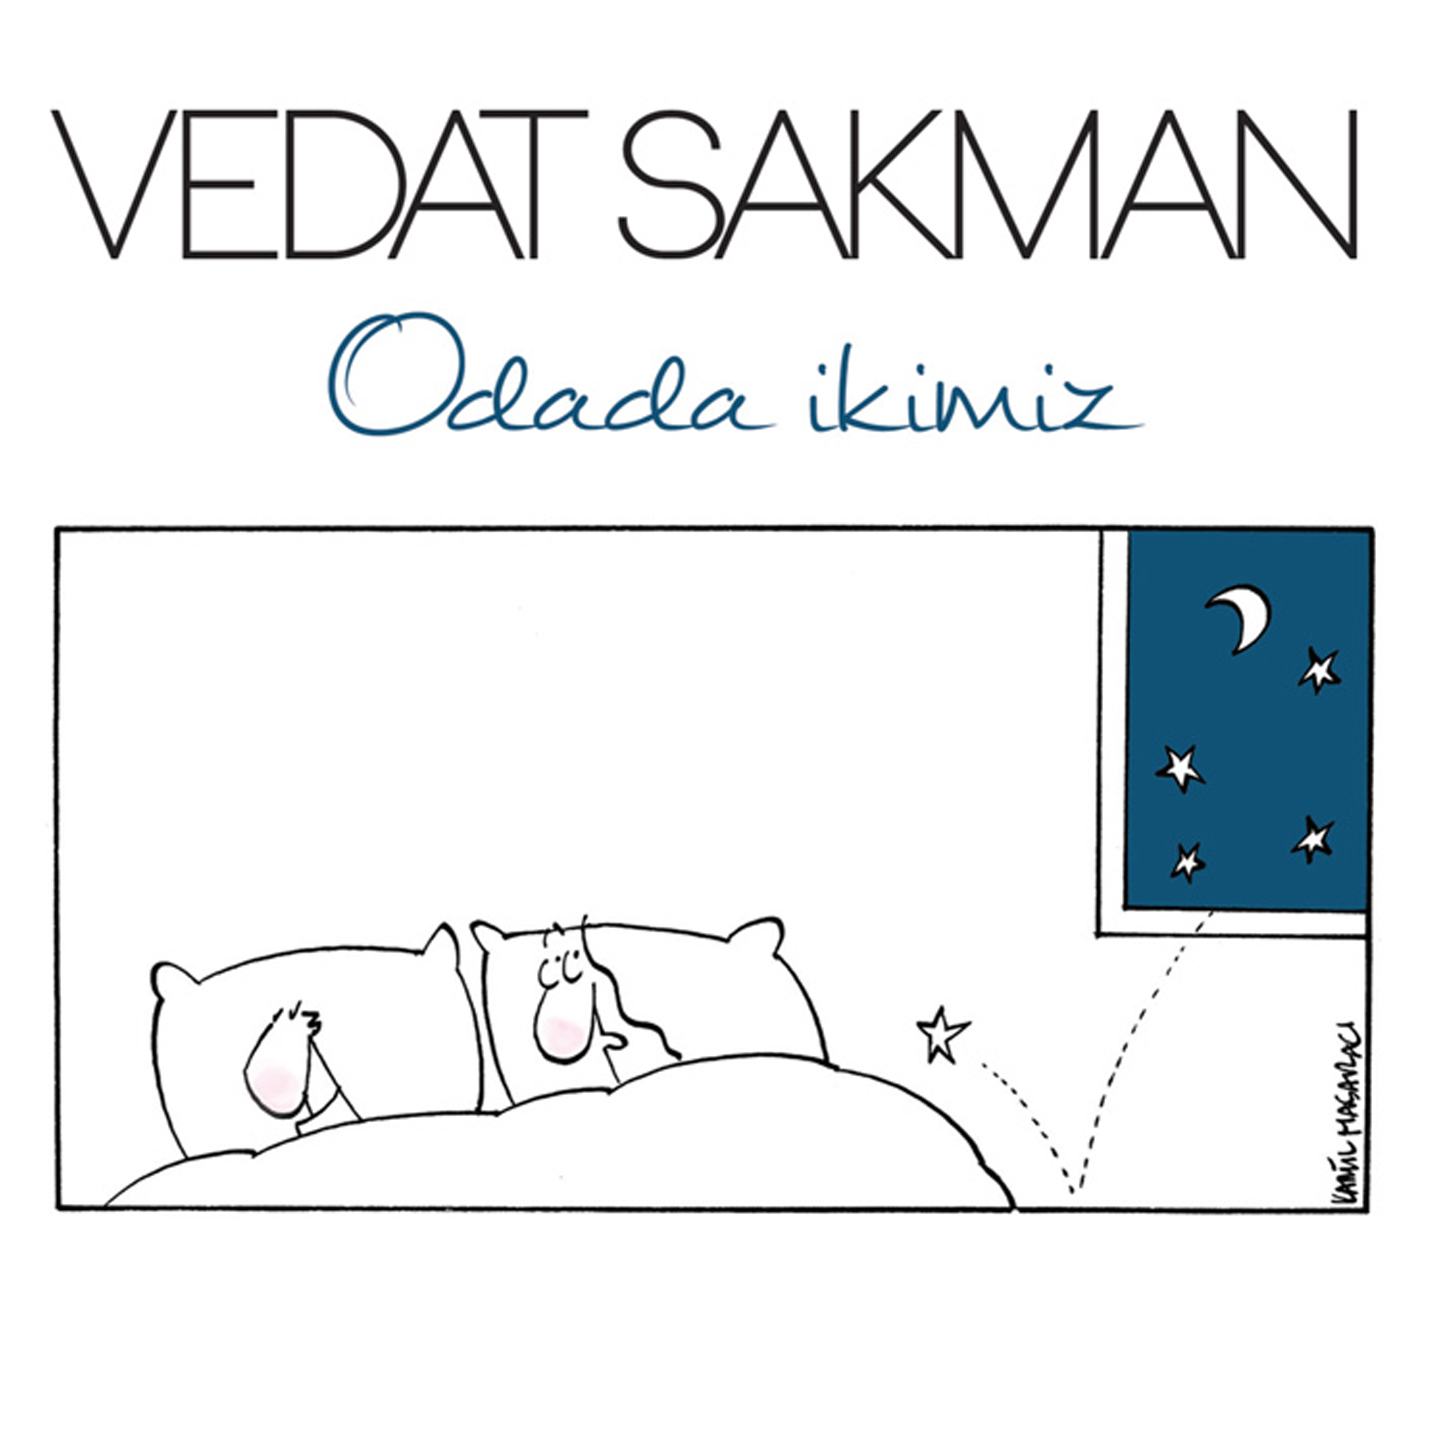 vedatsakman_cd_album.fh11